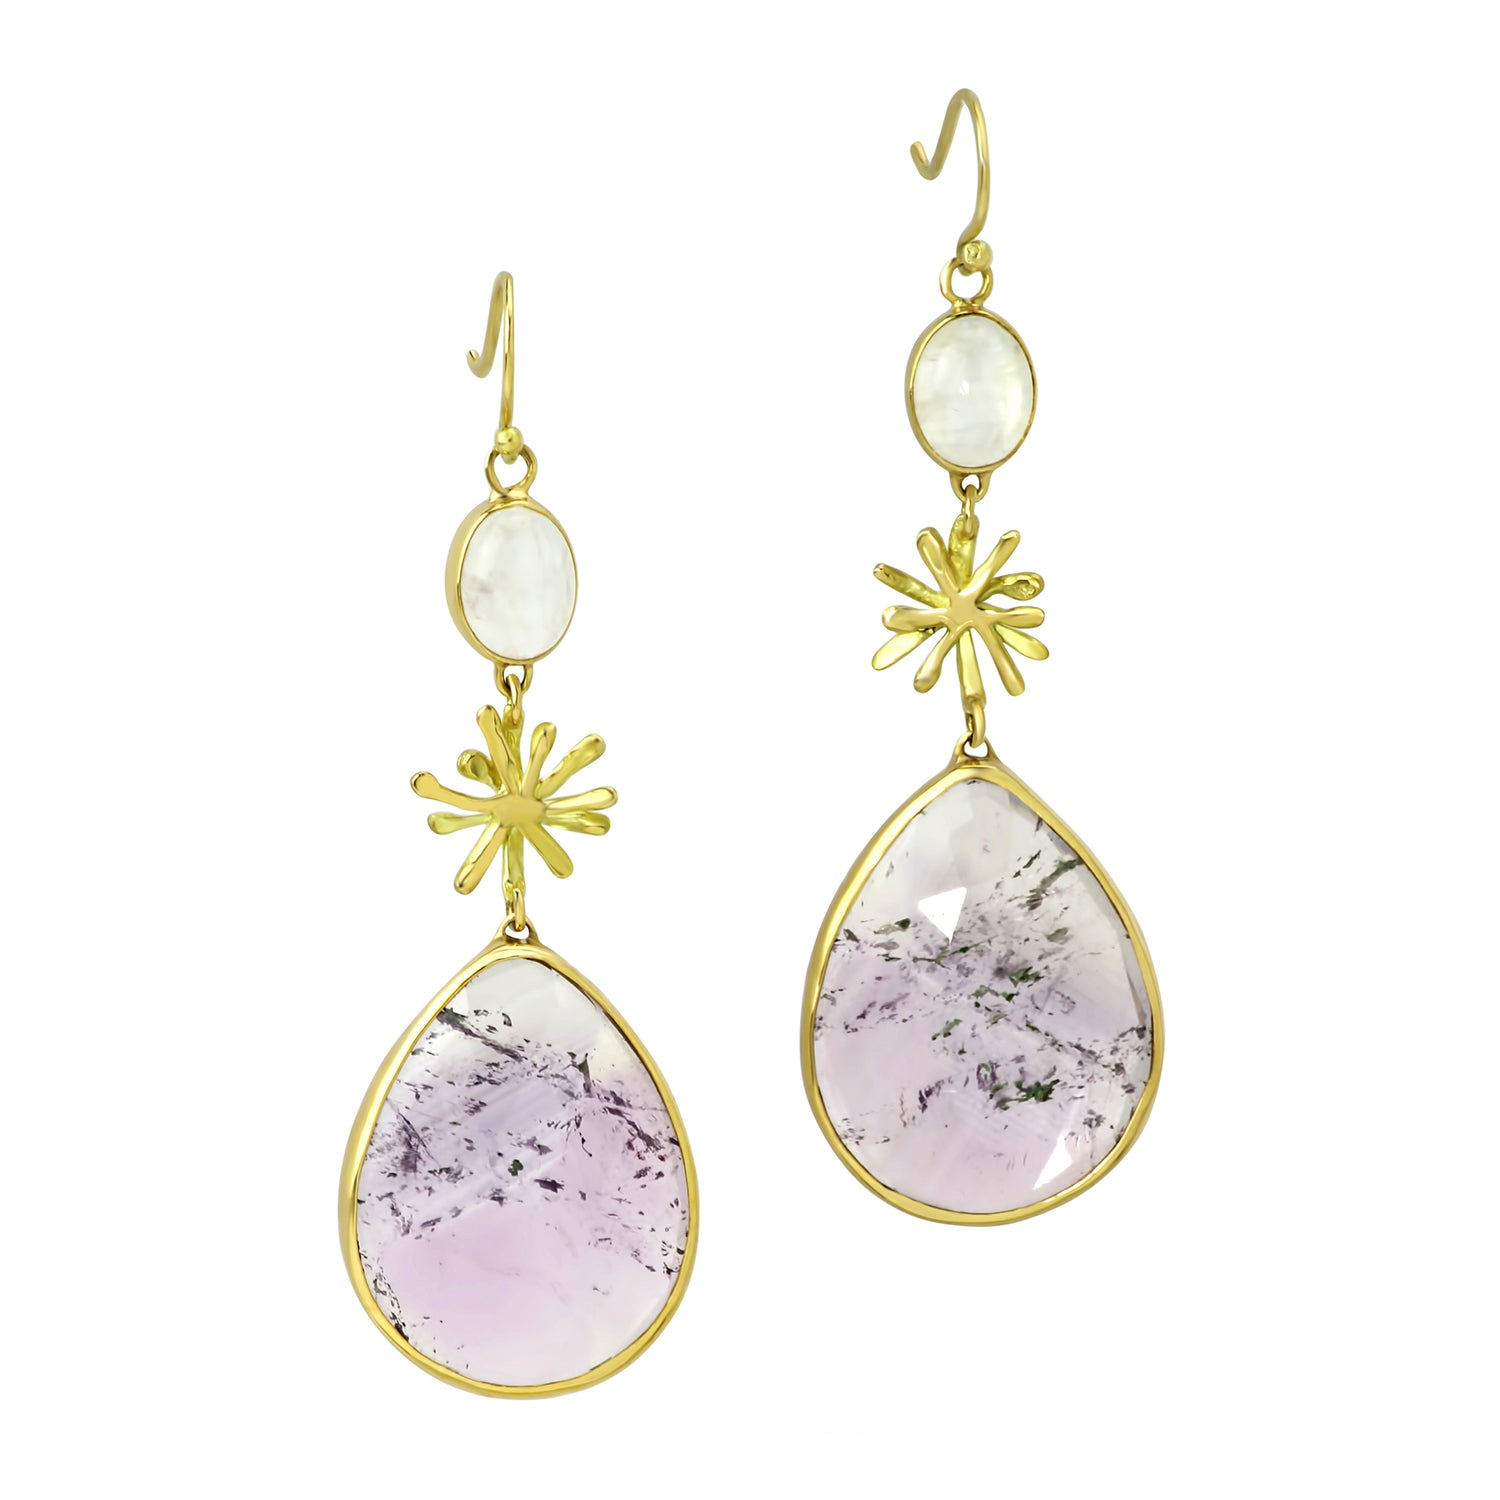 Emily Claire Designs Amethyst Moonstone Burst Drops